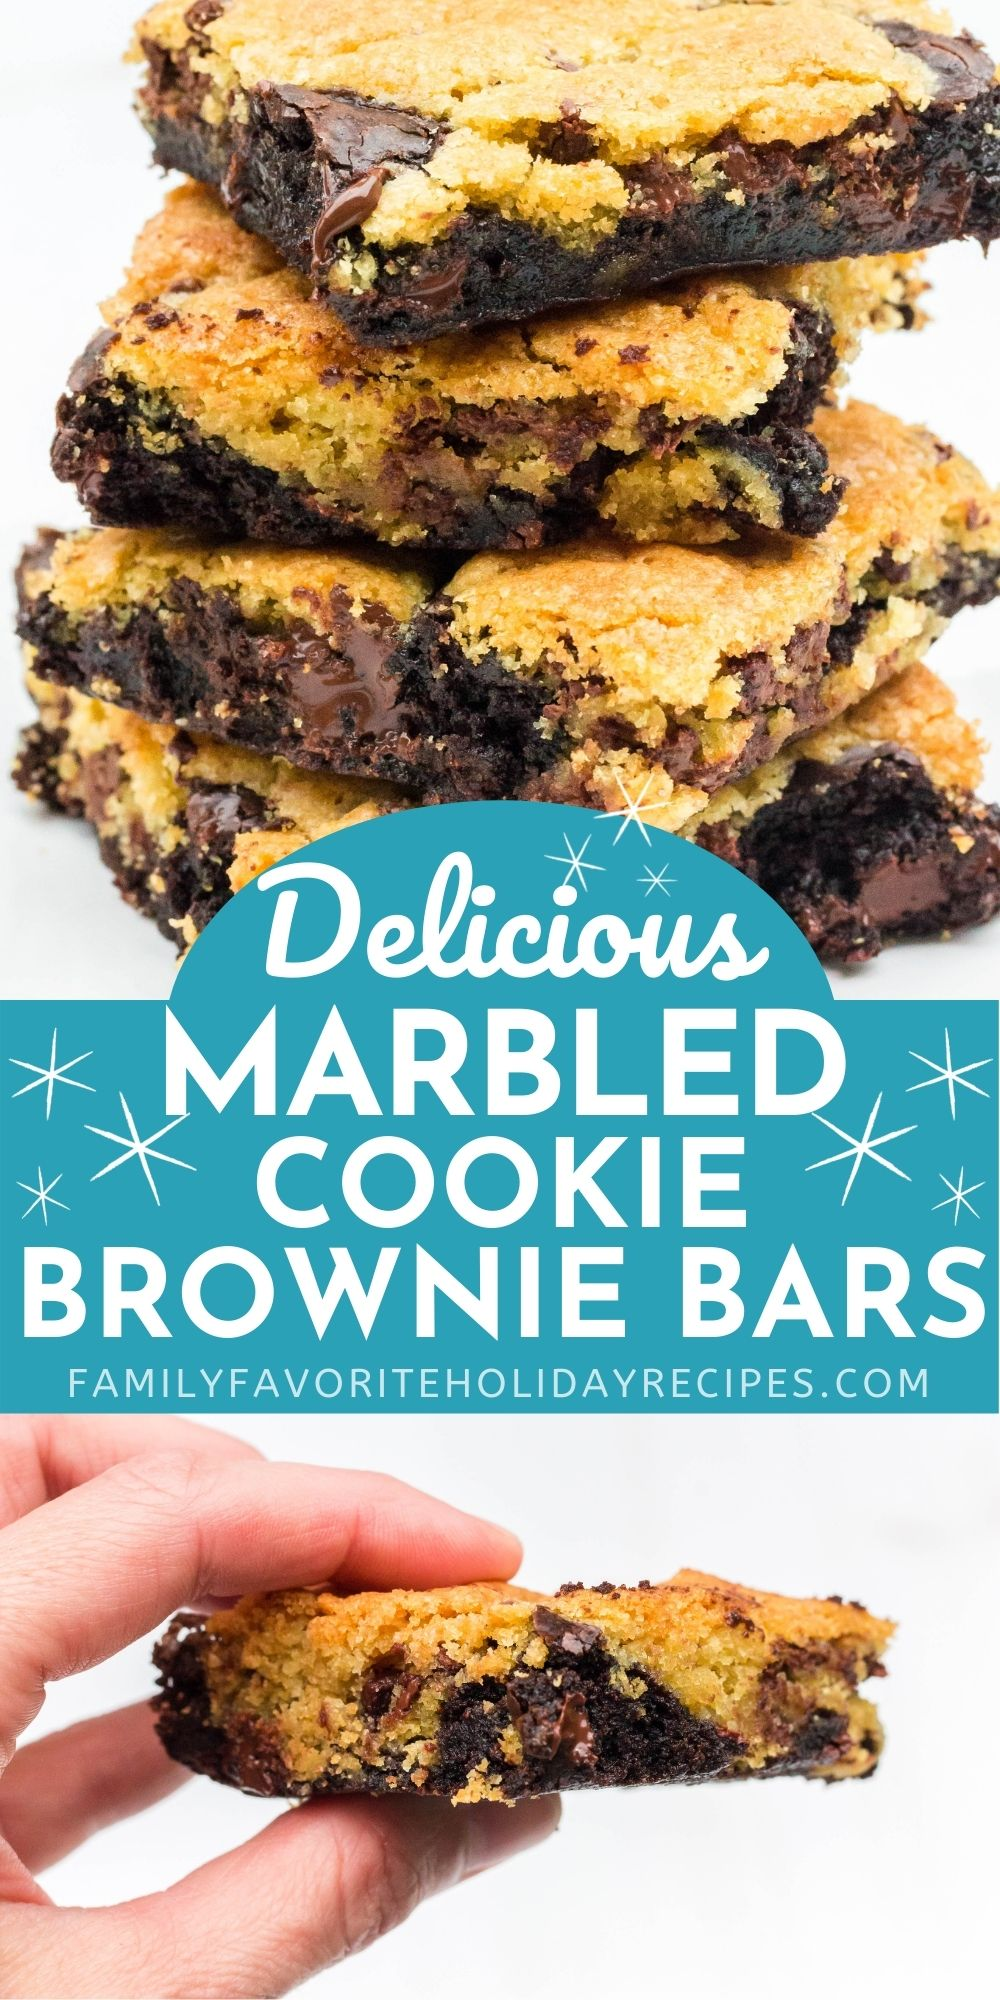 collage image featuring a stack of marbled cookie brownie bars and a hand holding a bar